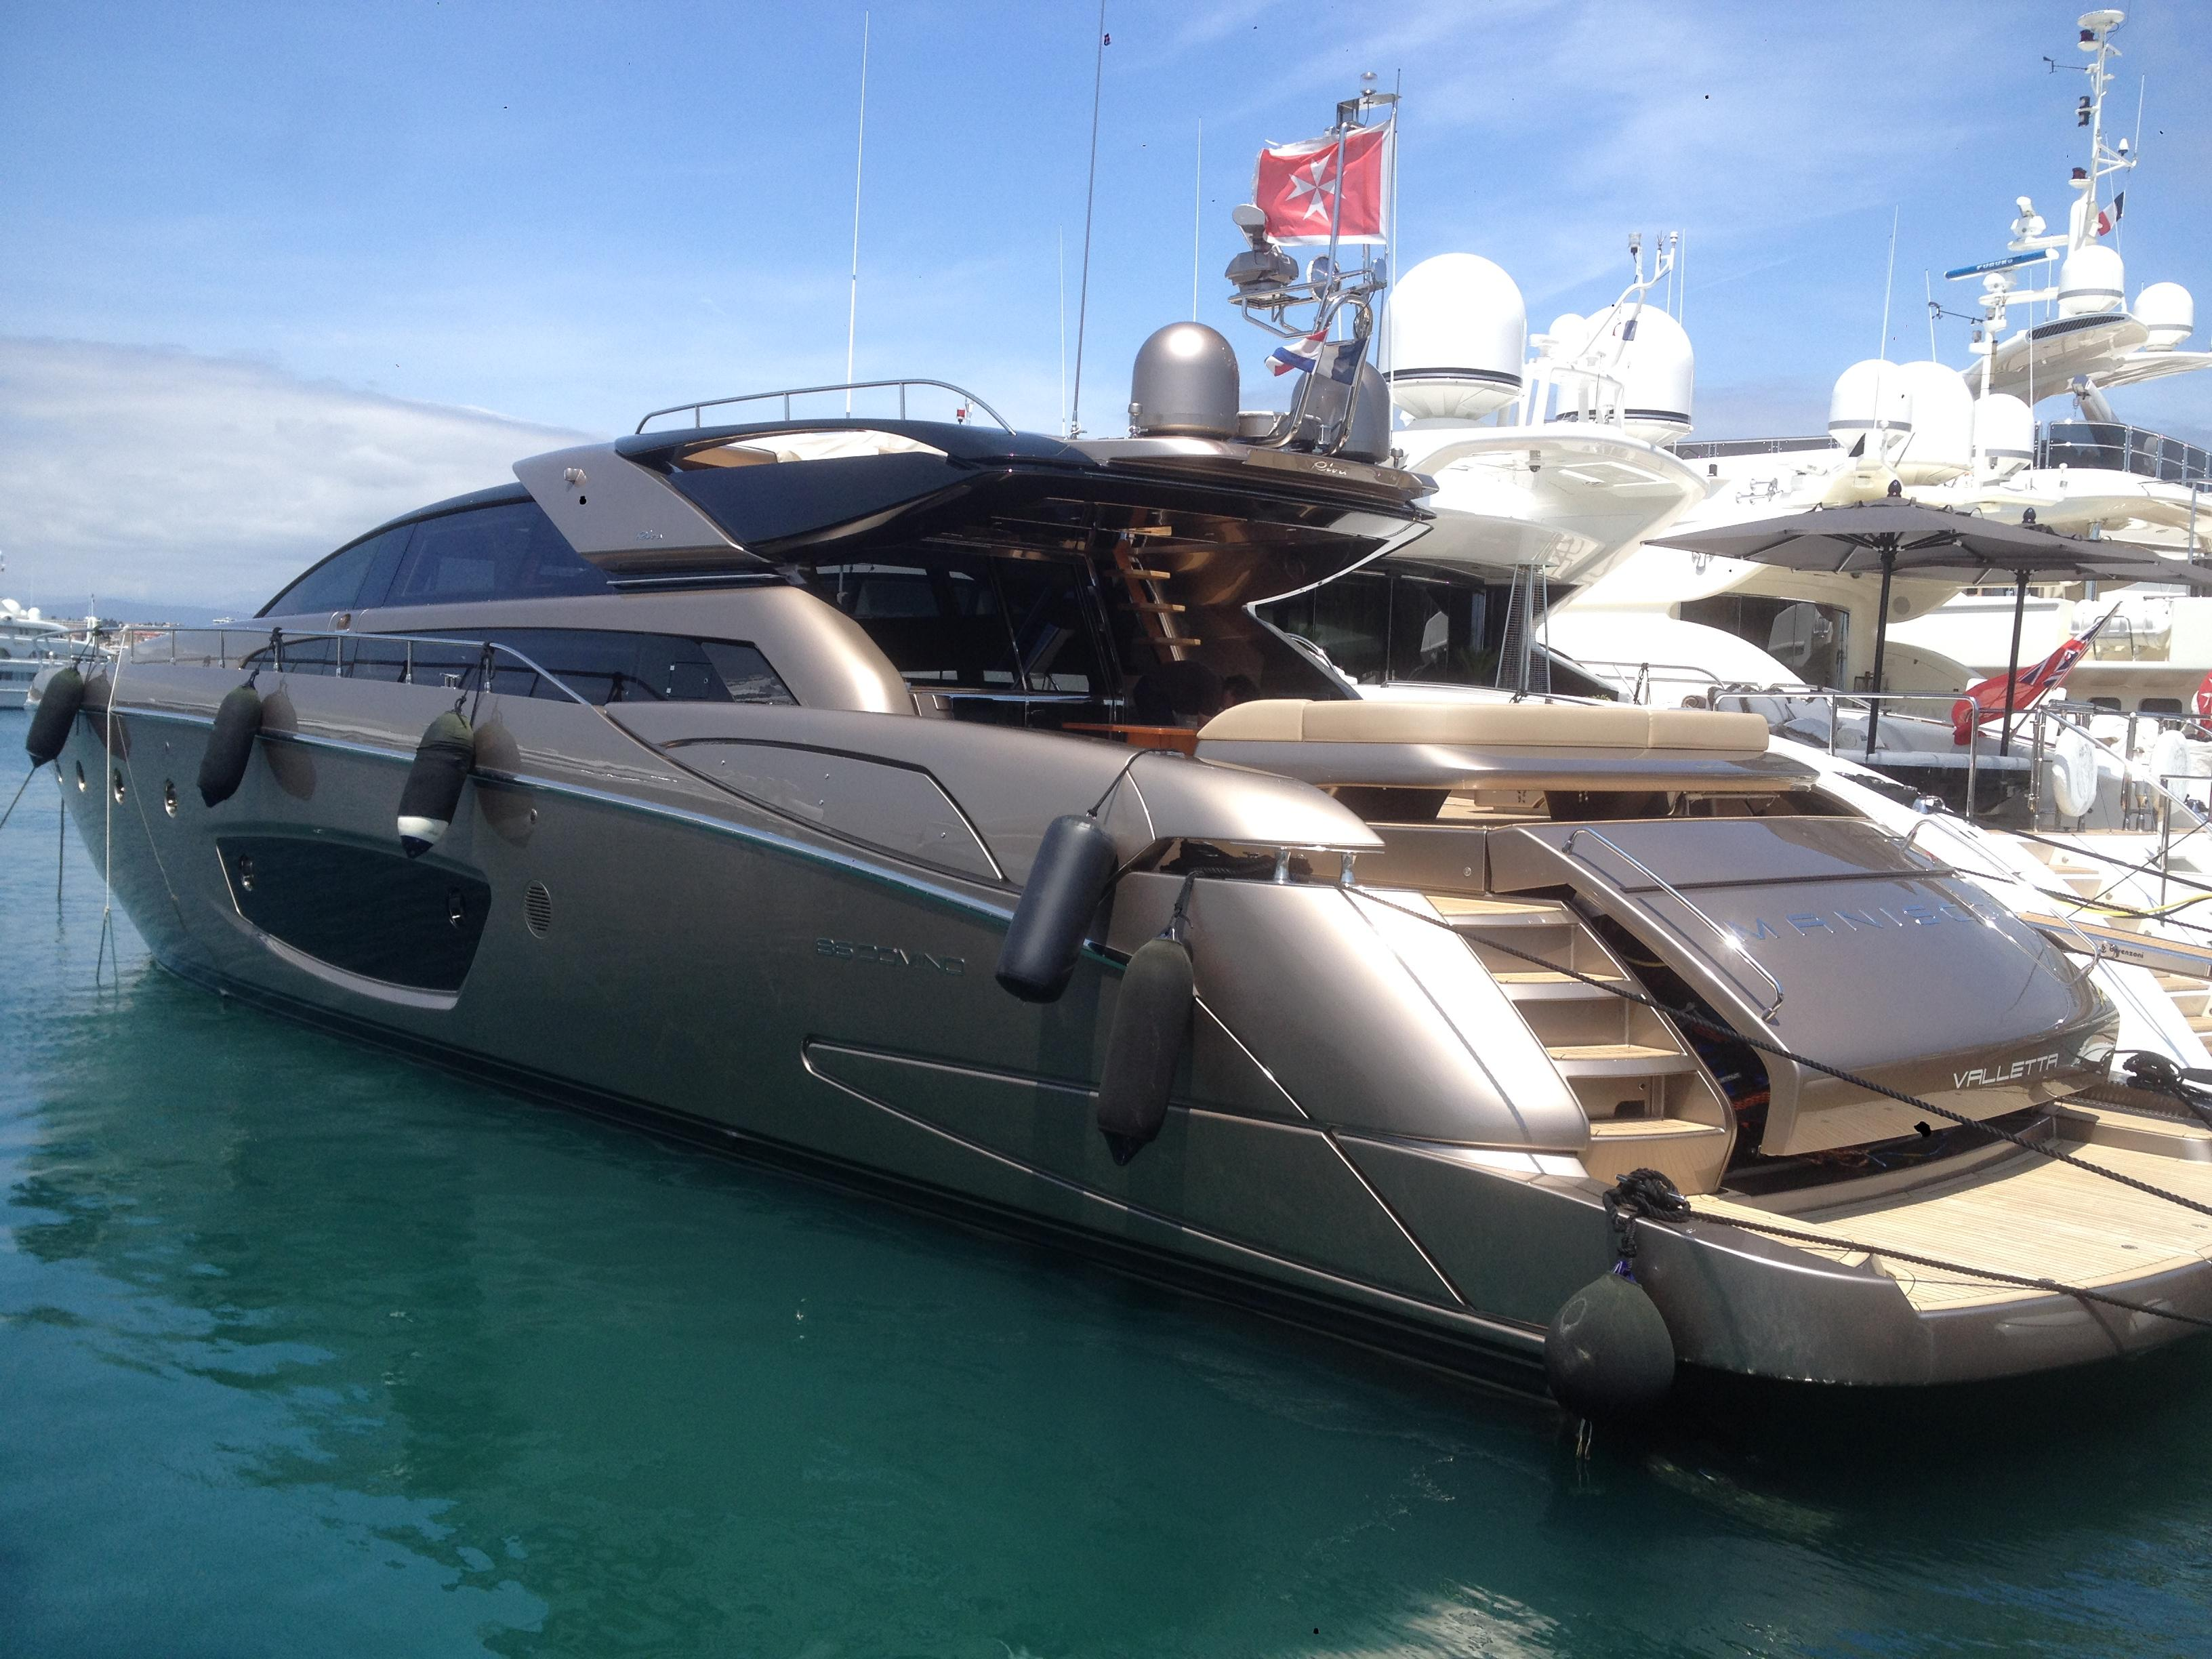 2012 Riva DOMINO Power Boat For Sale Wwwyachtworldcom